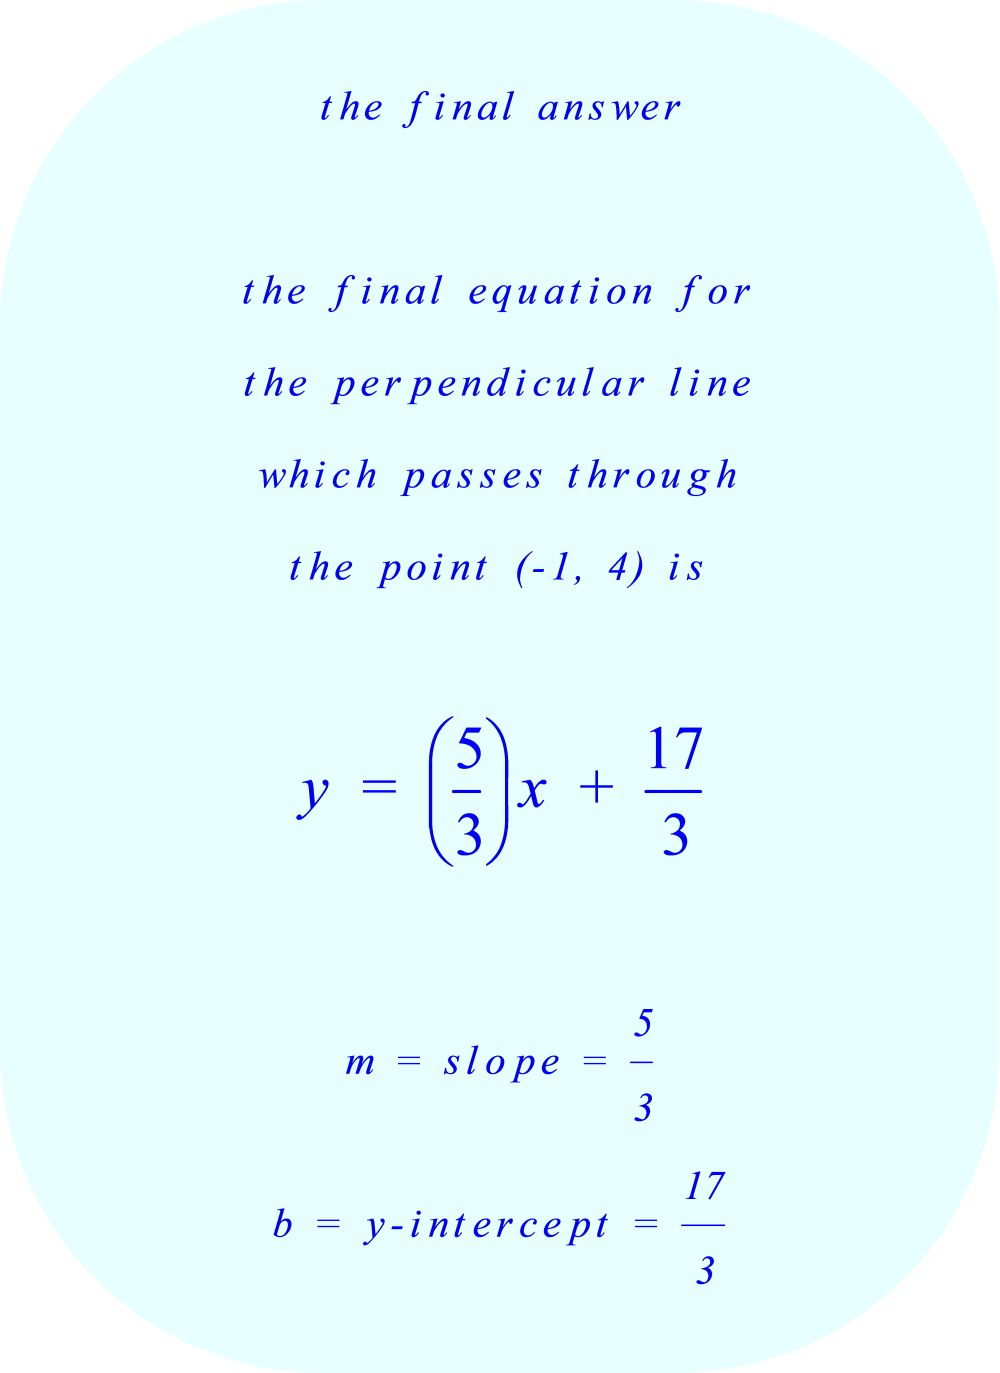 final equation for the perpendicular line which passes through the point  (-1, 4)